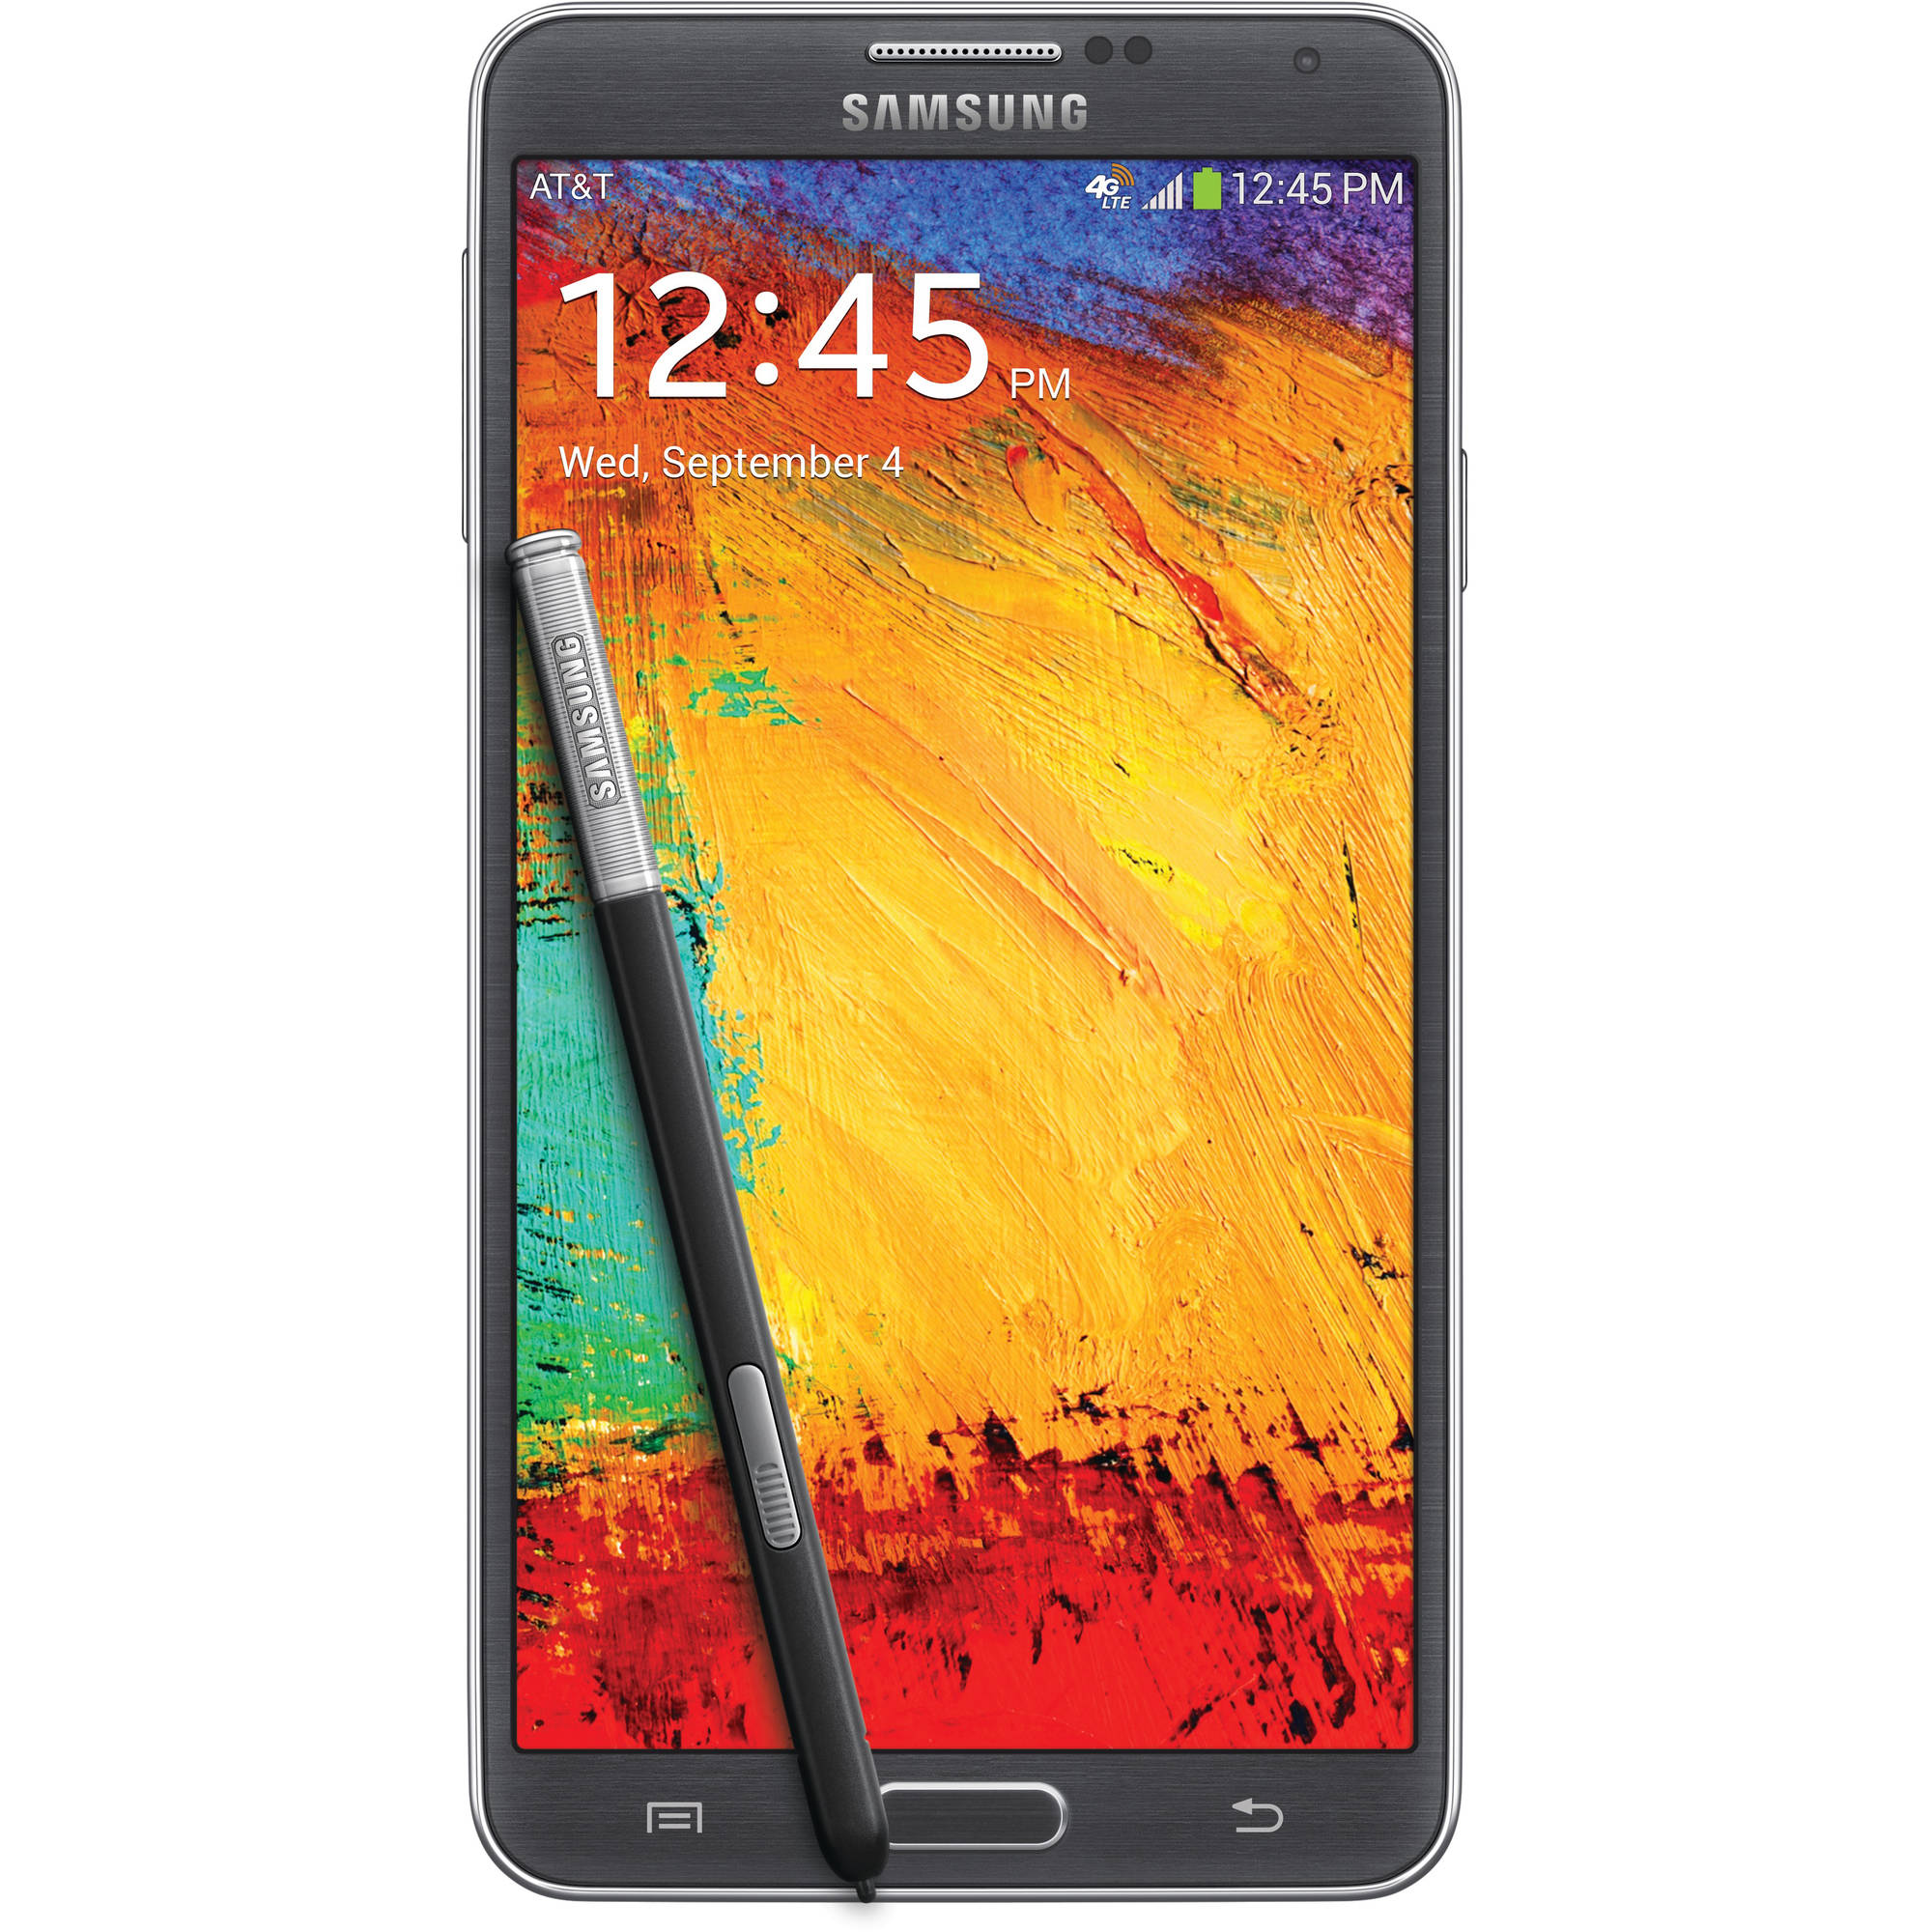 Refurbished Verizon Samsung Galaxy Note 3 Smartphone